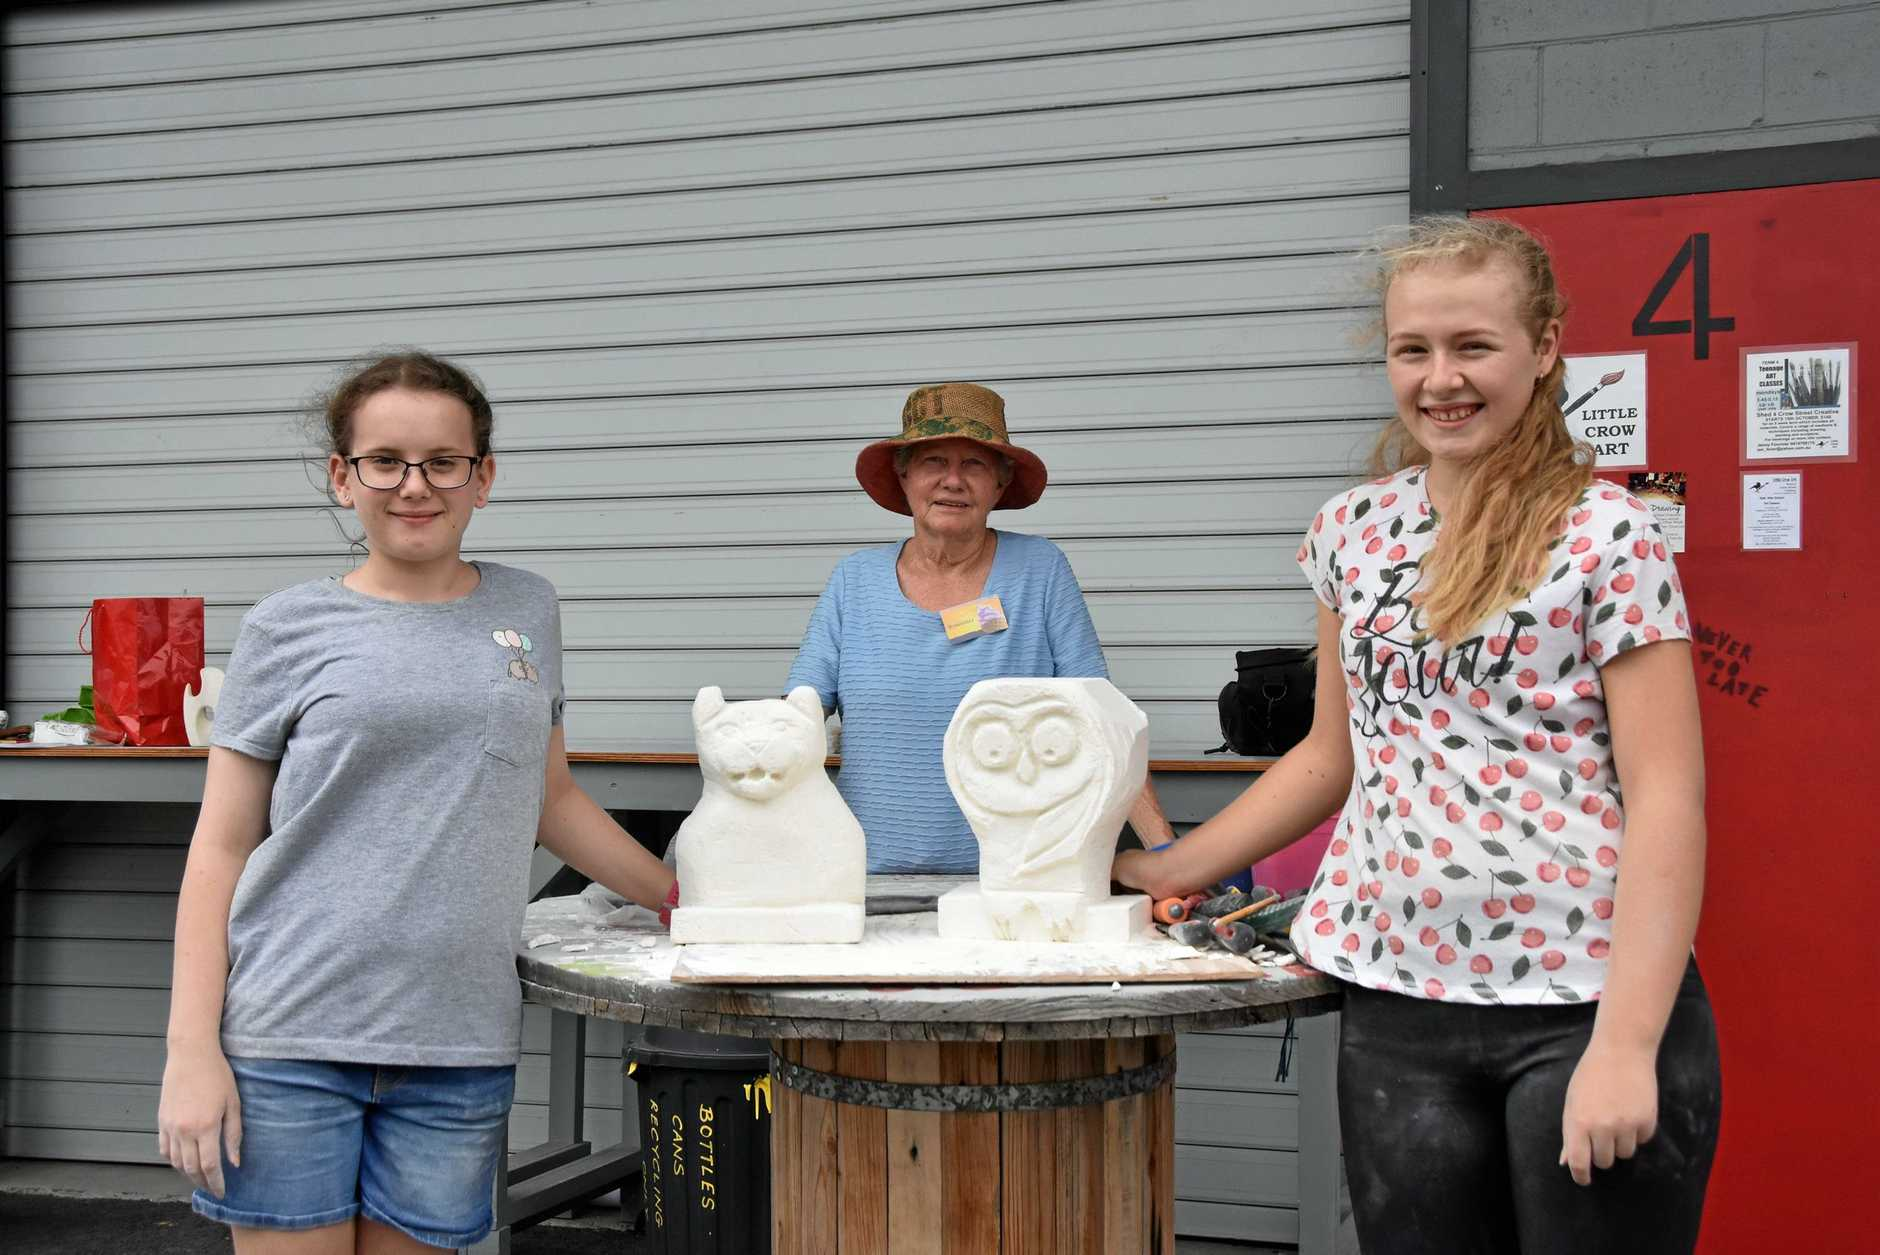 Amity Roberts, 13 and Tamara Colebrook, 15 with local artist Rosemary Anderson at the Sculpture in Limestone workshop for SUNfest 2019.